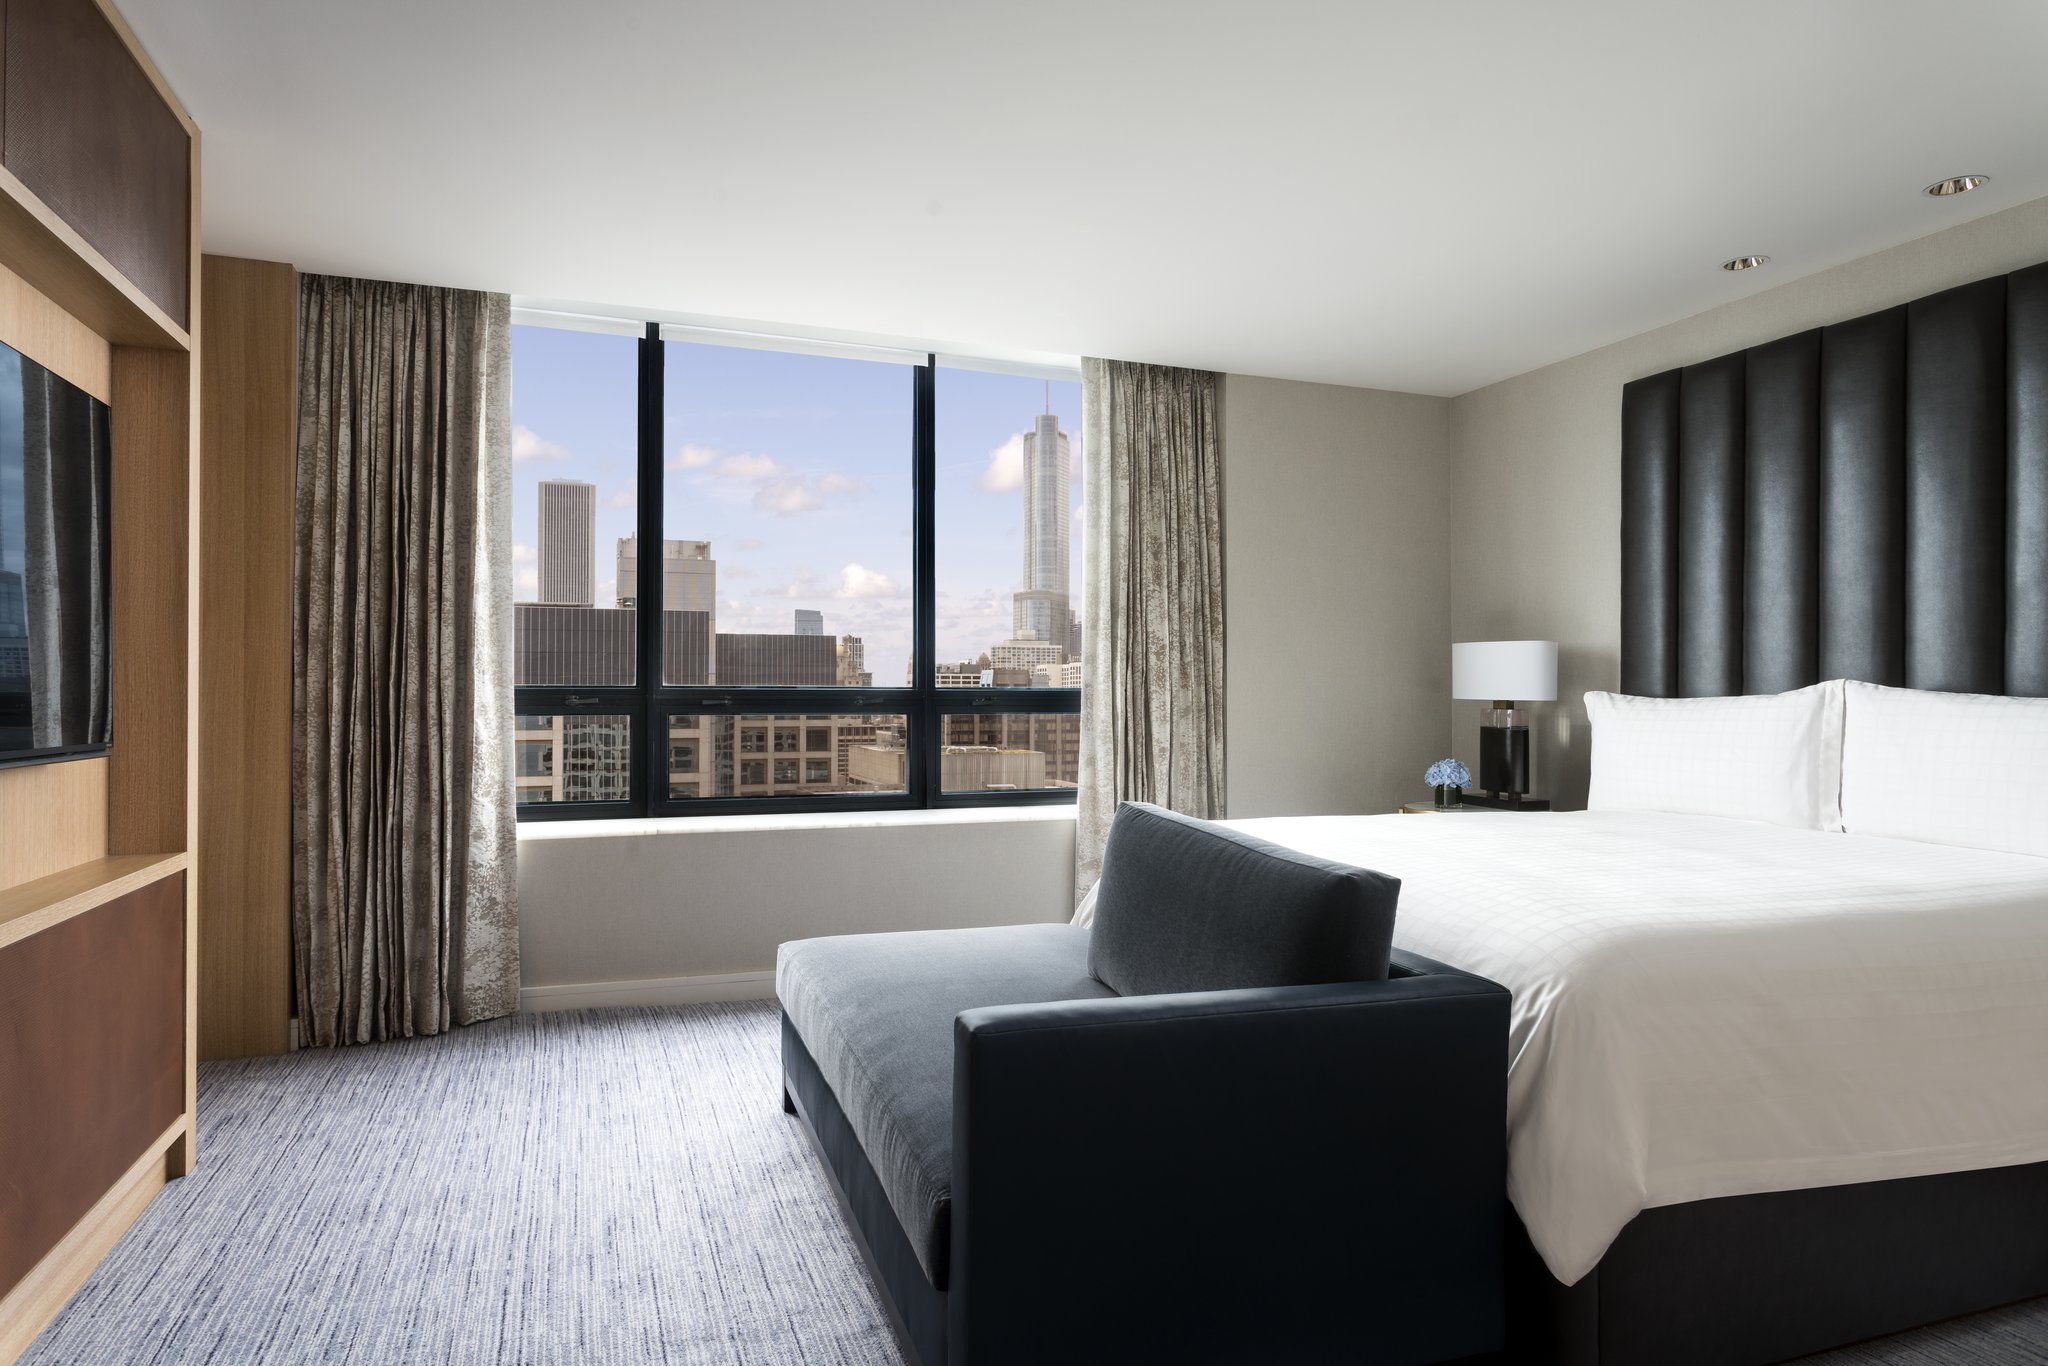 The ritz carlton chicago photos sagar b all destinations Hotels with 2 bedroom suites in chicago